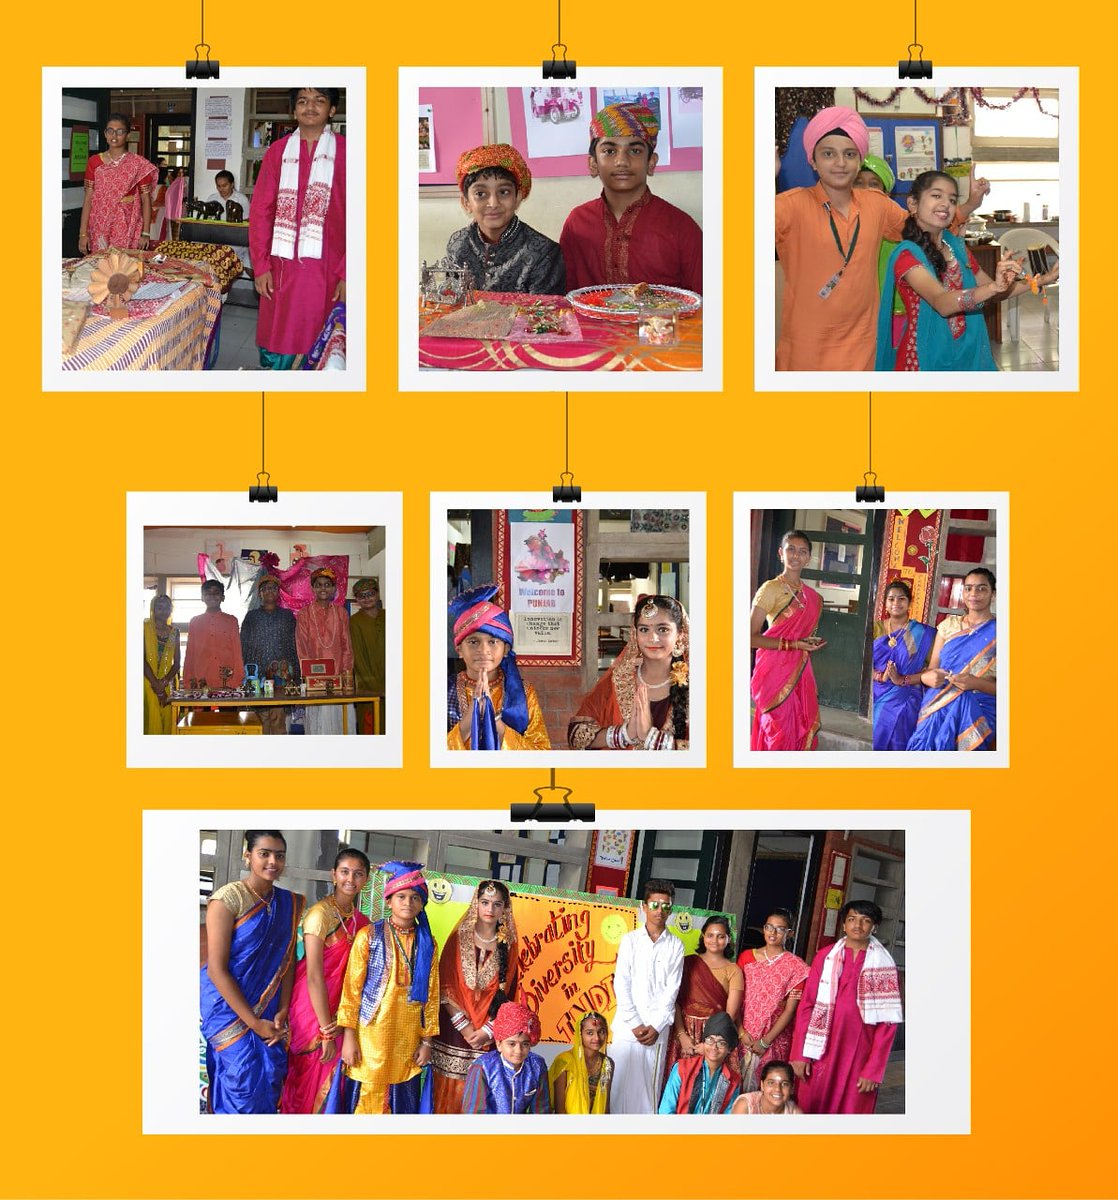 Diversity of Indian Culture being taught in Prerna , using Role Play technique. This teaching method enables the students to immerse themselves fully into a situation through role interaction leading to experiential learning.  #indianculture #SLN #prerna #DPSBopal #Kalorex #MPS https://t.co/oq7S4zca6g